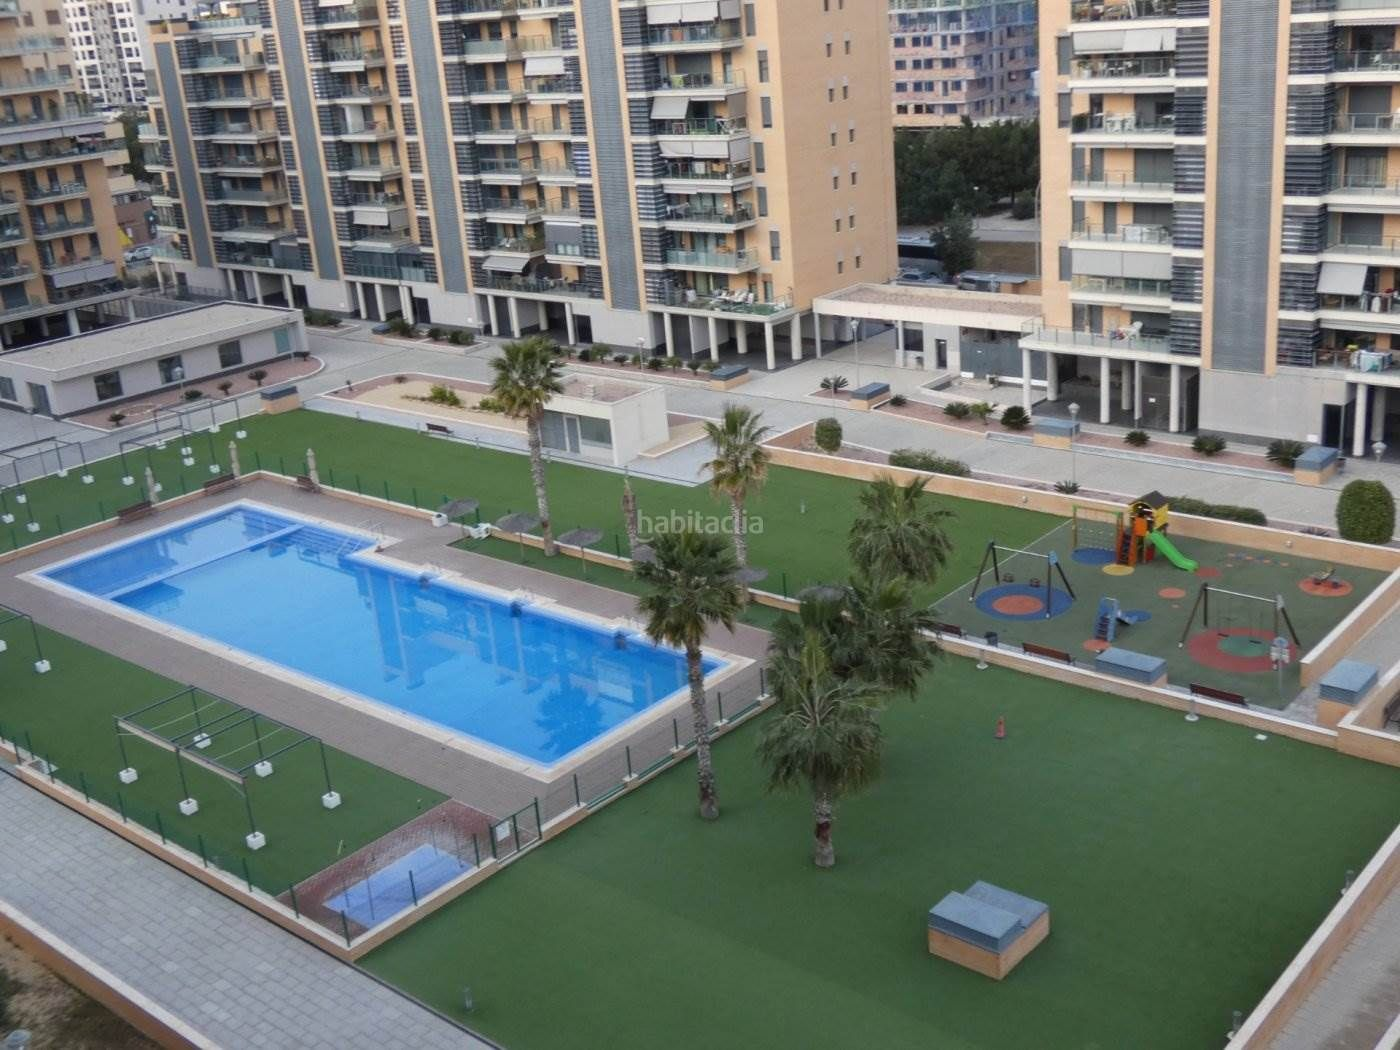 Location Appartement à Alicante Golf. Estupenda vivienda a estrenar de obra terminada en pau 5 playa d